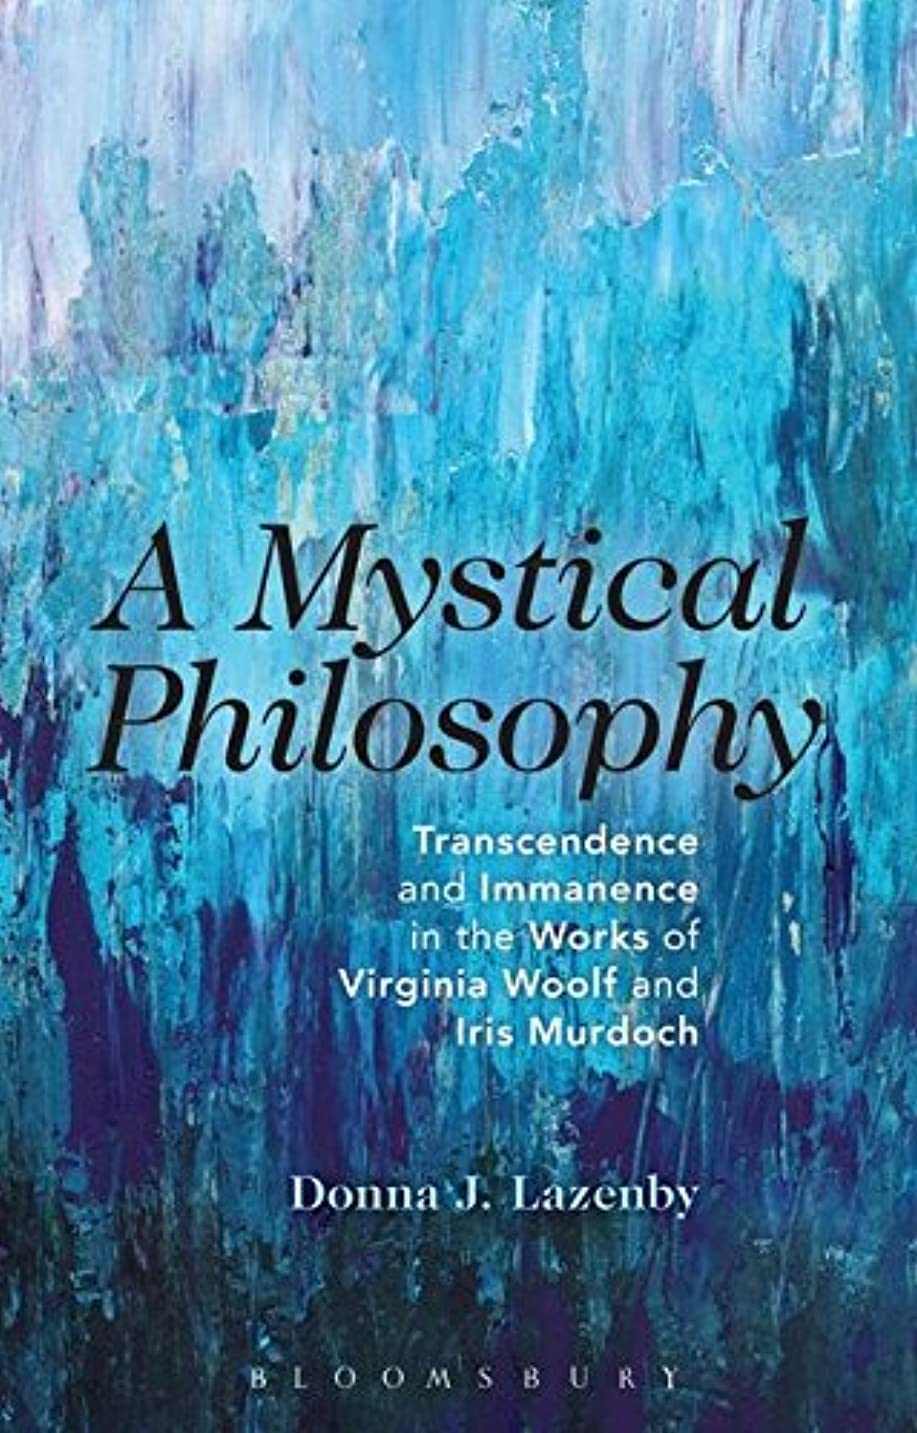 壊滅的な成熟したマークされたA Mystical Philosophy: Transcendence and Immanence in the Works of Virginia Woolf and Iris Murdoch